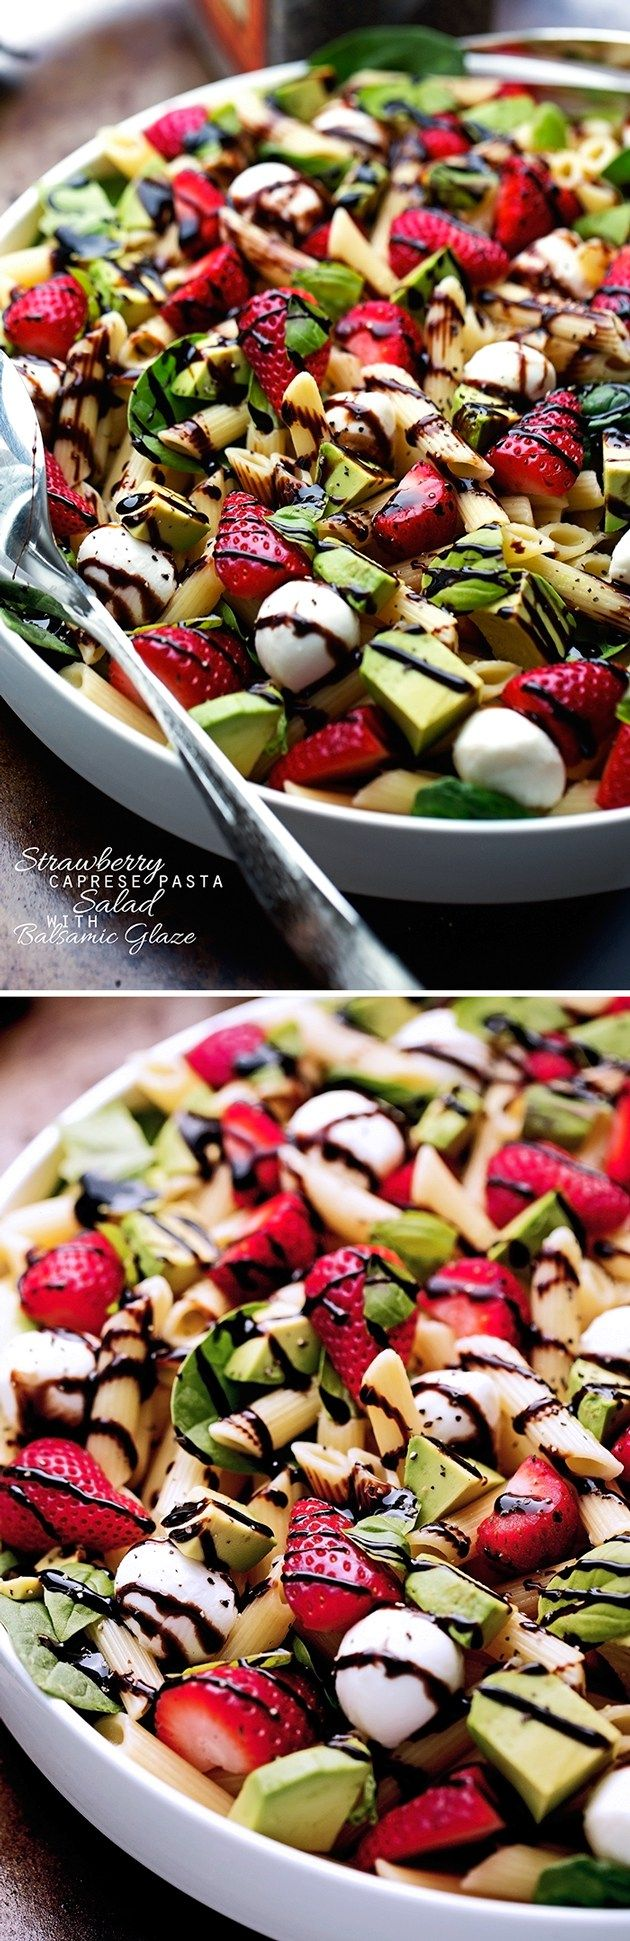 Strawberry Caprese Pasta Salad - Made with a homemade balsamic glaze, this salad is to die for! #pastasalad #capresepastasalad #balsamicglaze | Littlespicejar.com